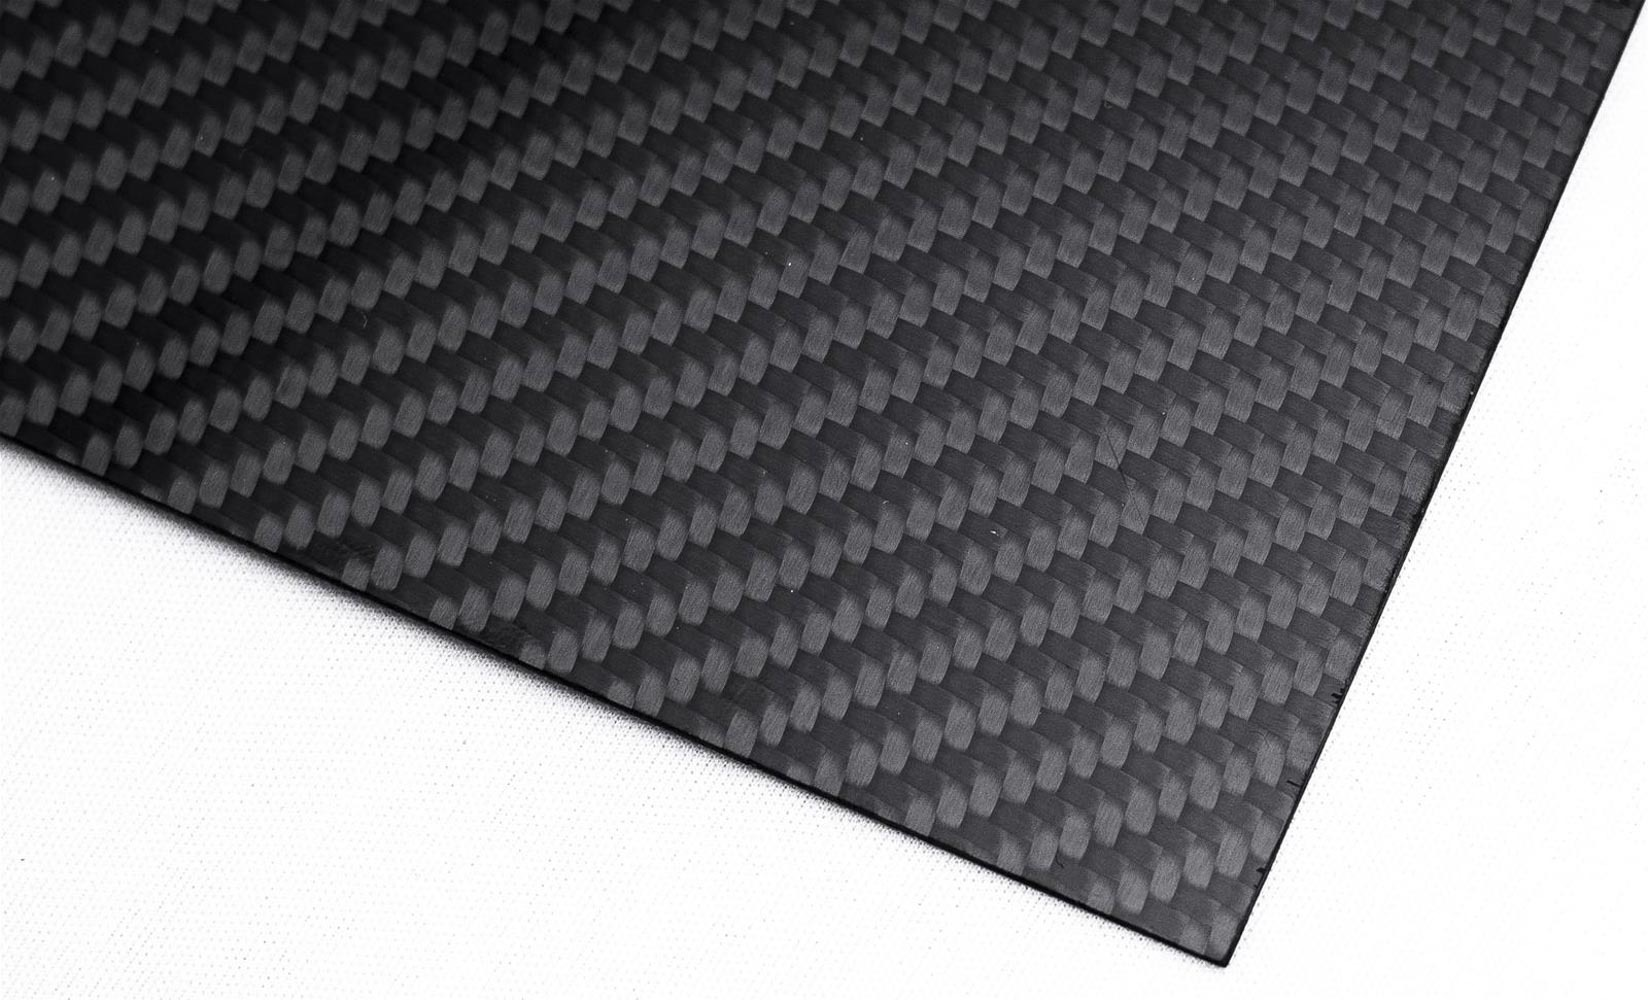 Real Carbon Fiber Sheet Gloss Finish 24in x 39in